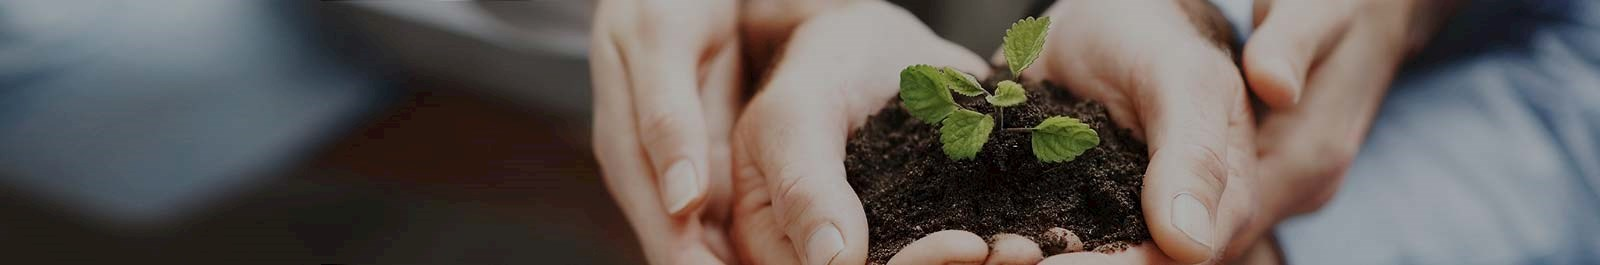 Header image - closeup of sets of hands cradling a growing plant